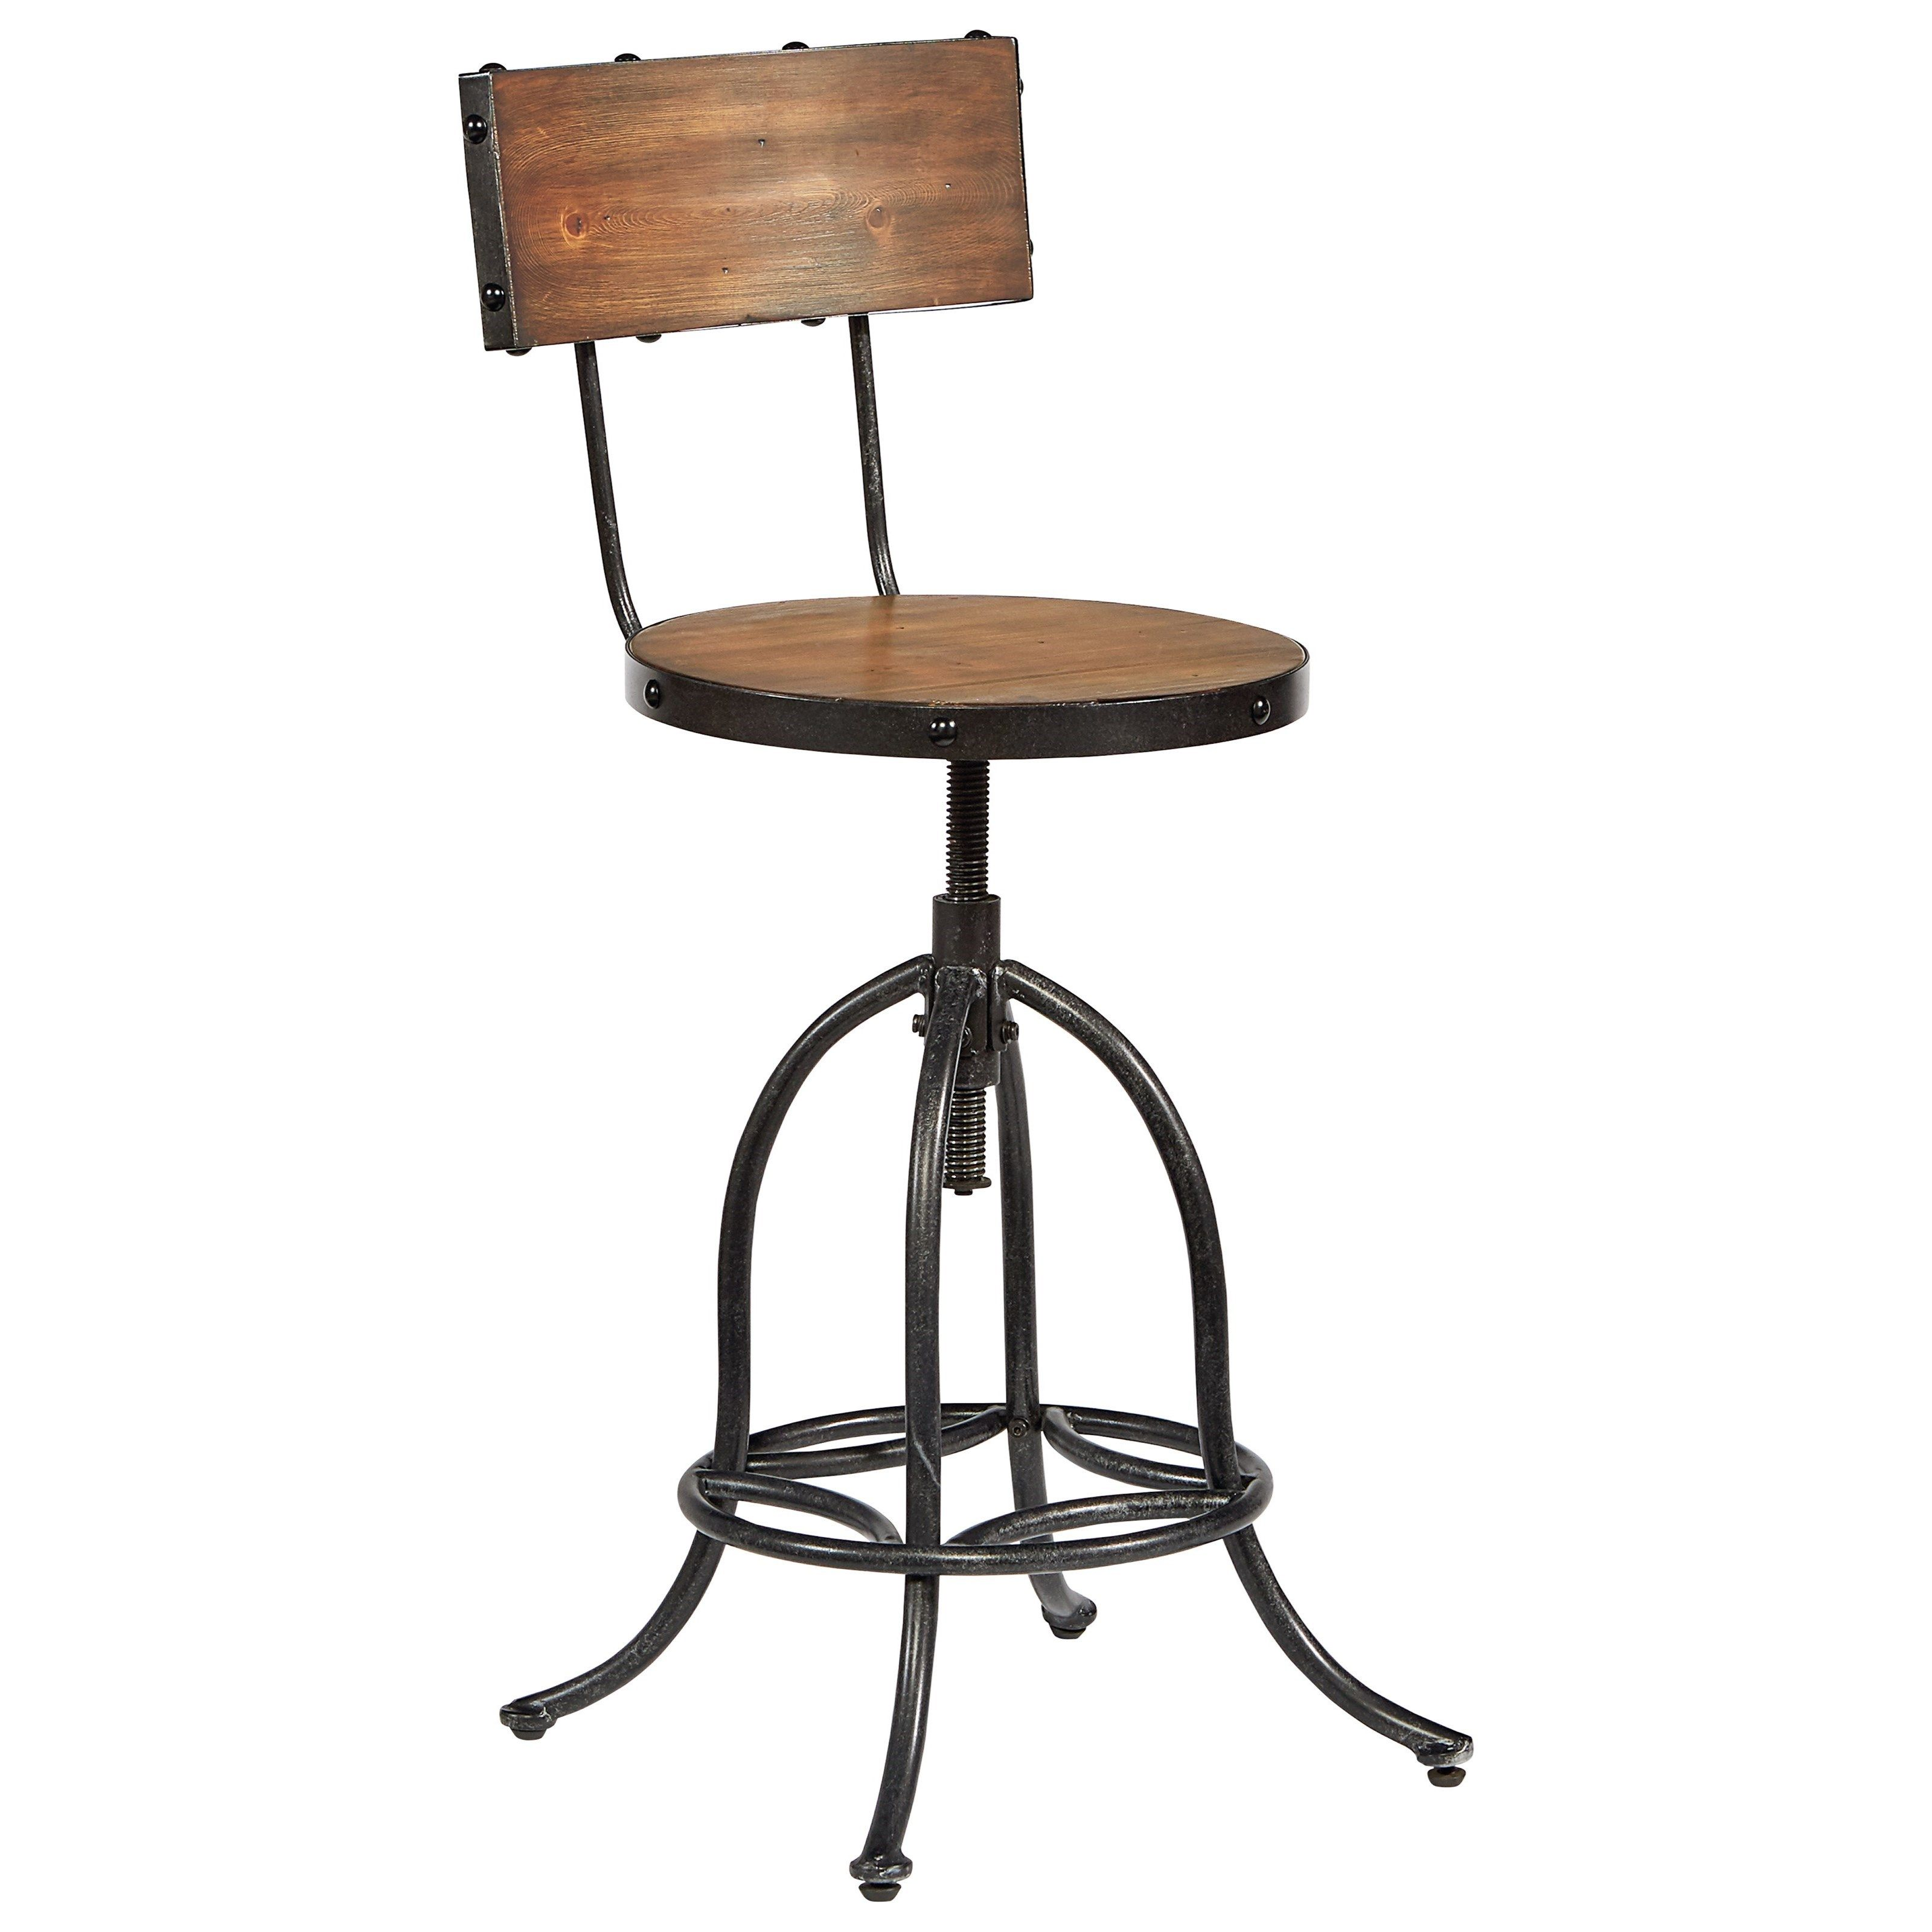 accent elements architect stool with bronze legs and wooden seat accent elements architect stool with bronze legs and wooden seat by magnolia home by joanna gaines